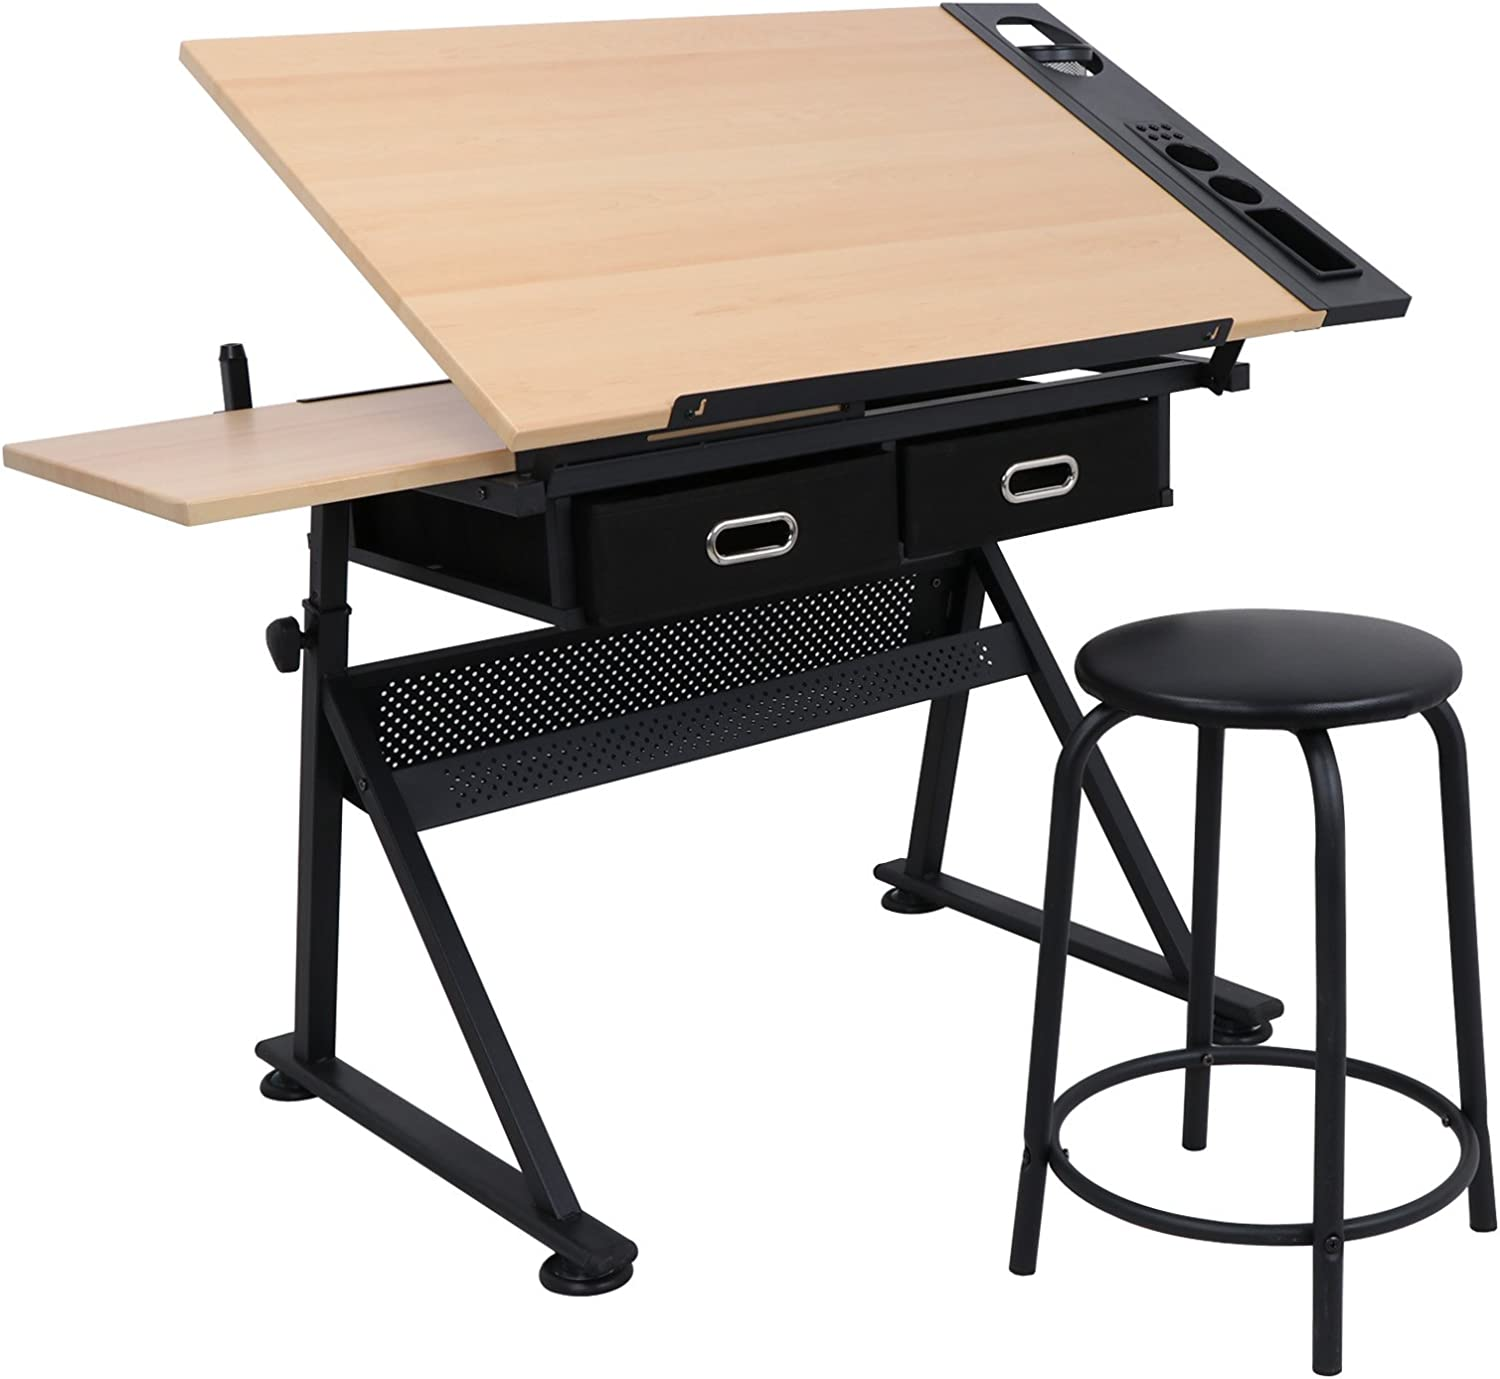 Oteymart Drafting Table Adjustable Drawing a Desk Challenge the lowest price of Japan Free w Stool Max 48% OFF